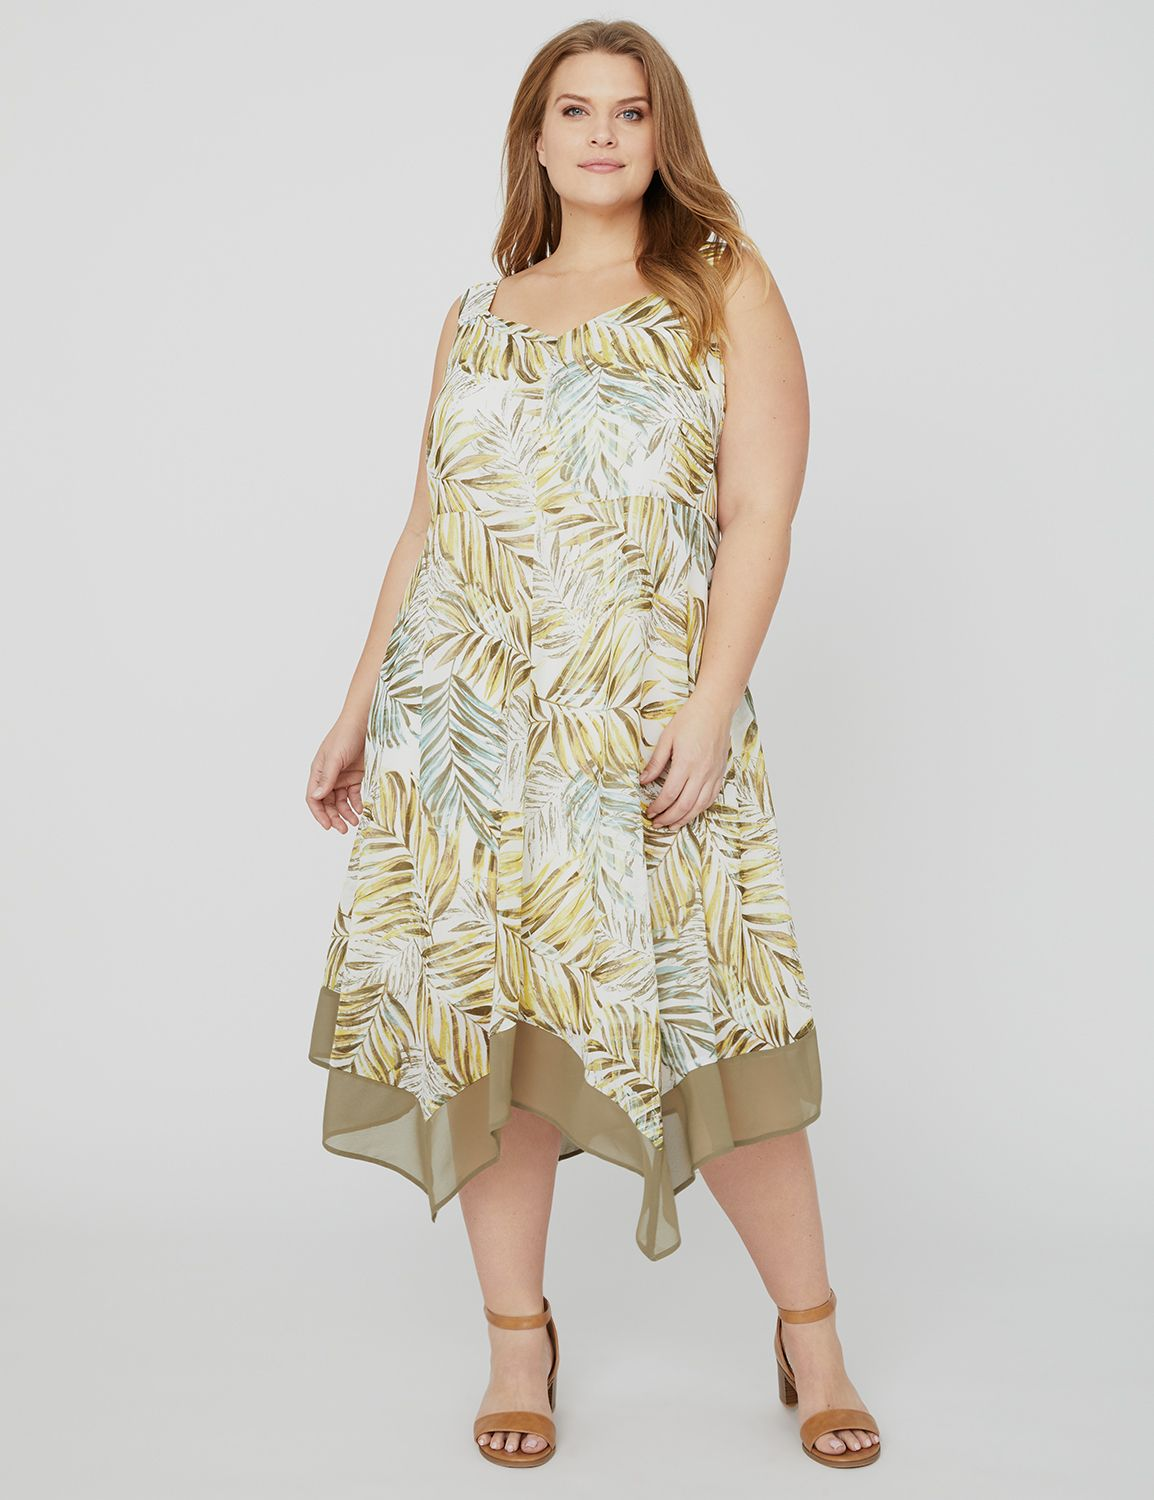 Greenwood Imprint Dress with Hankerchief Hem 1089938 Printed HANKY HEM DRESS wit MP-300102373